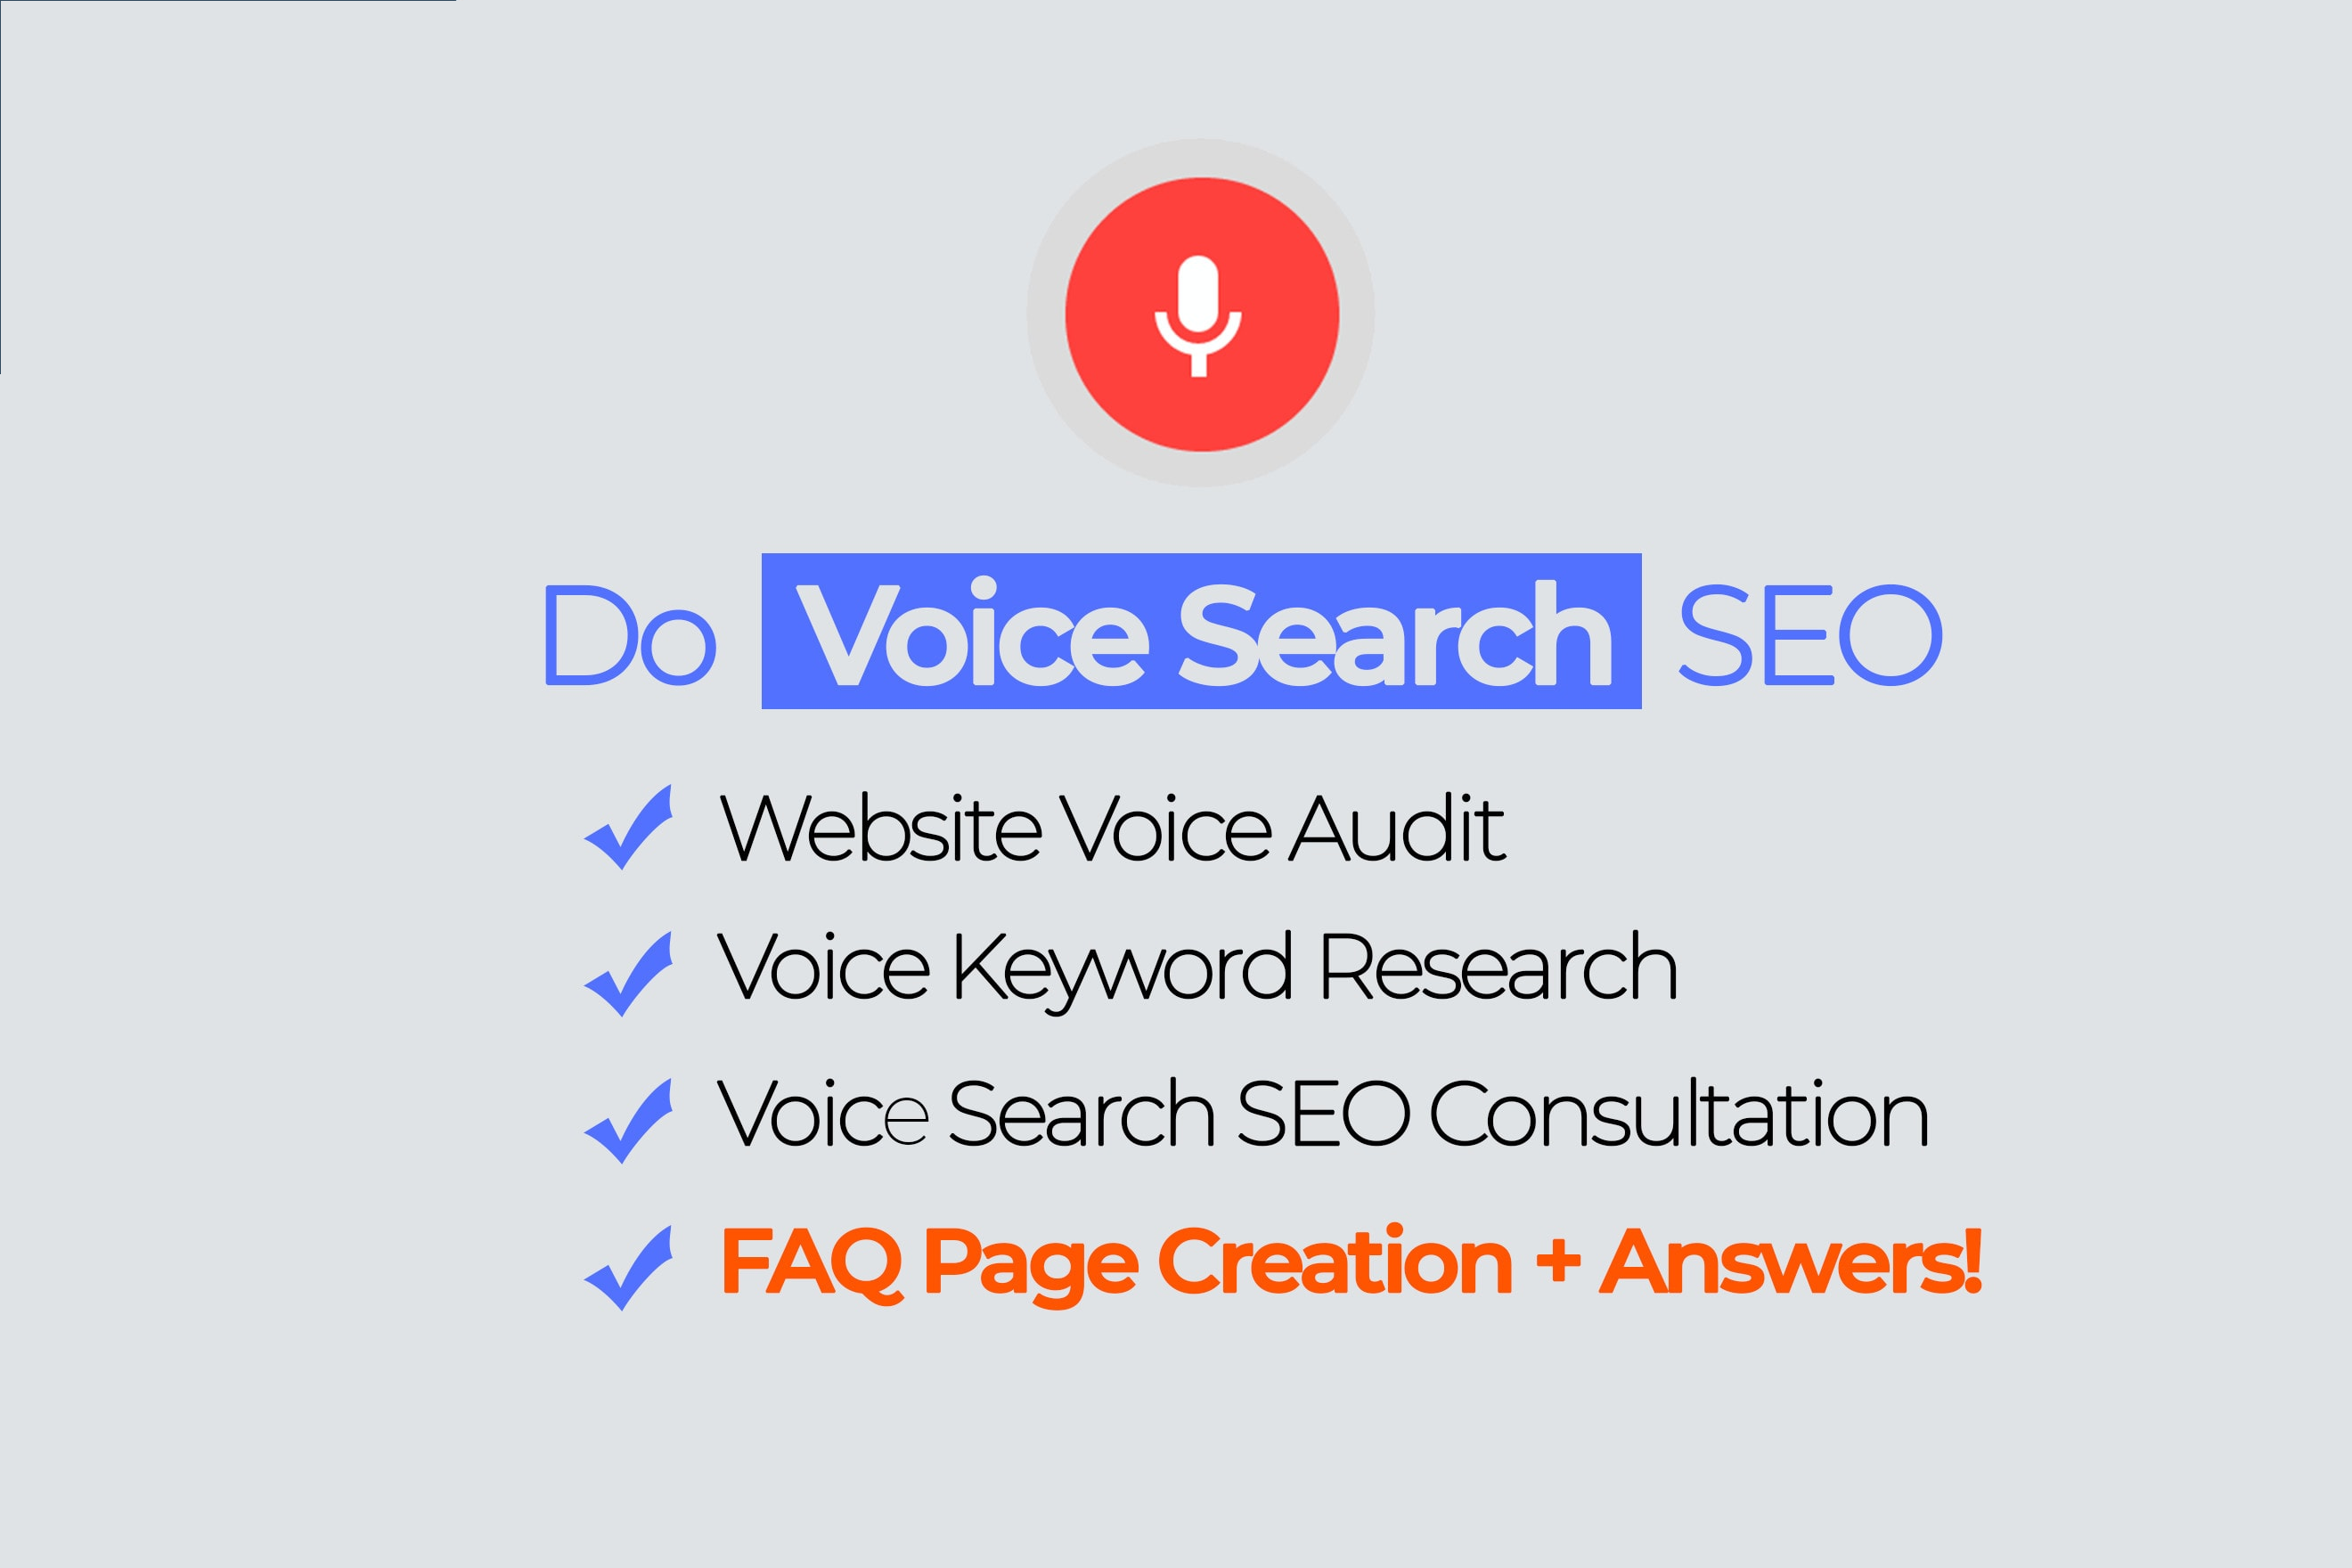 I will do voice search SEO and technical website voice audit